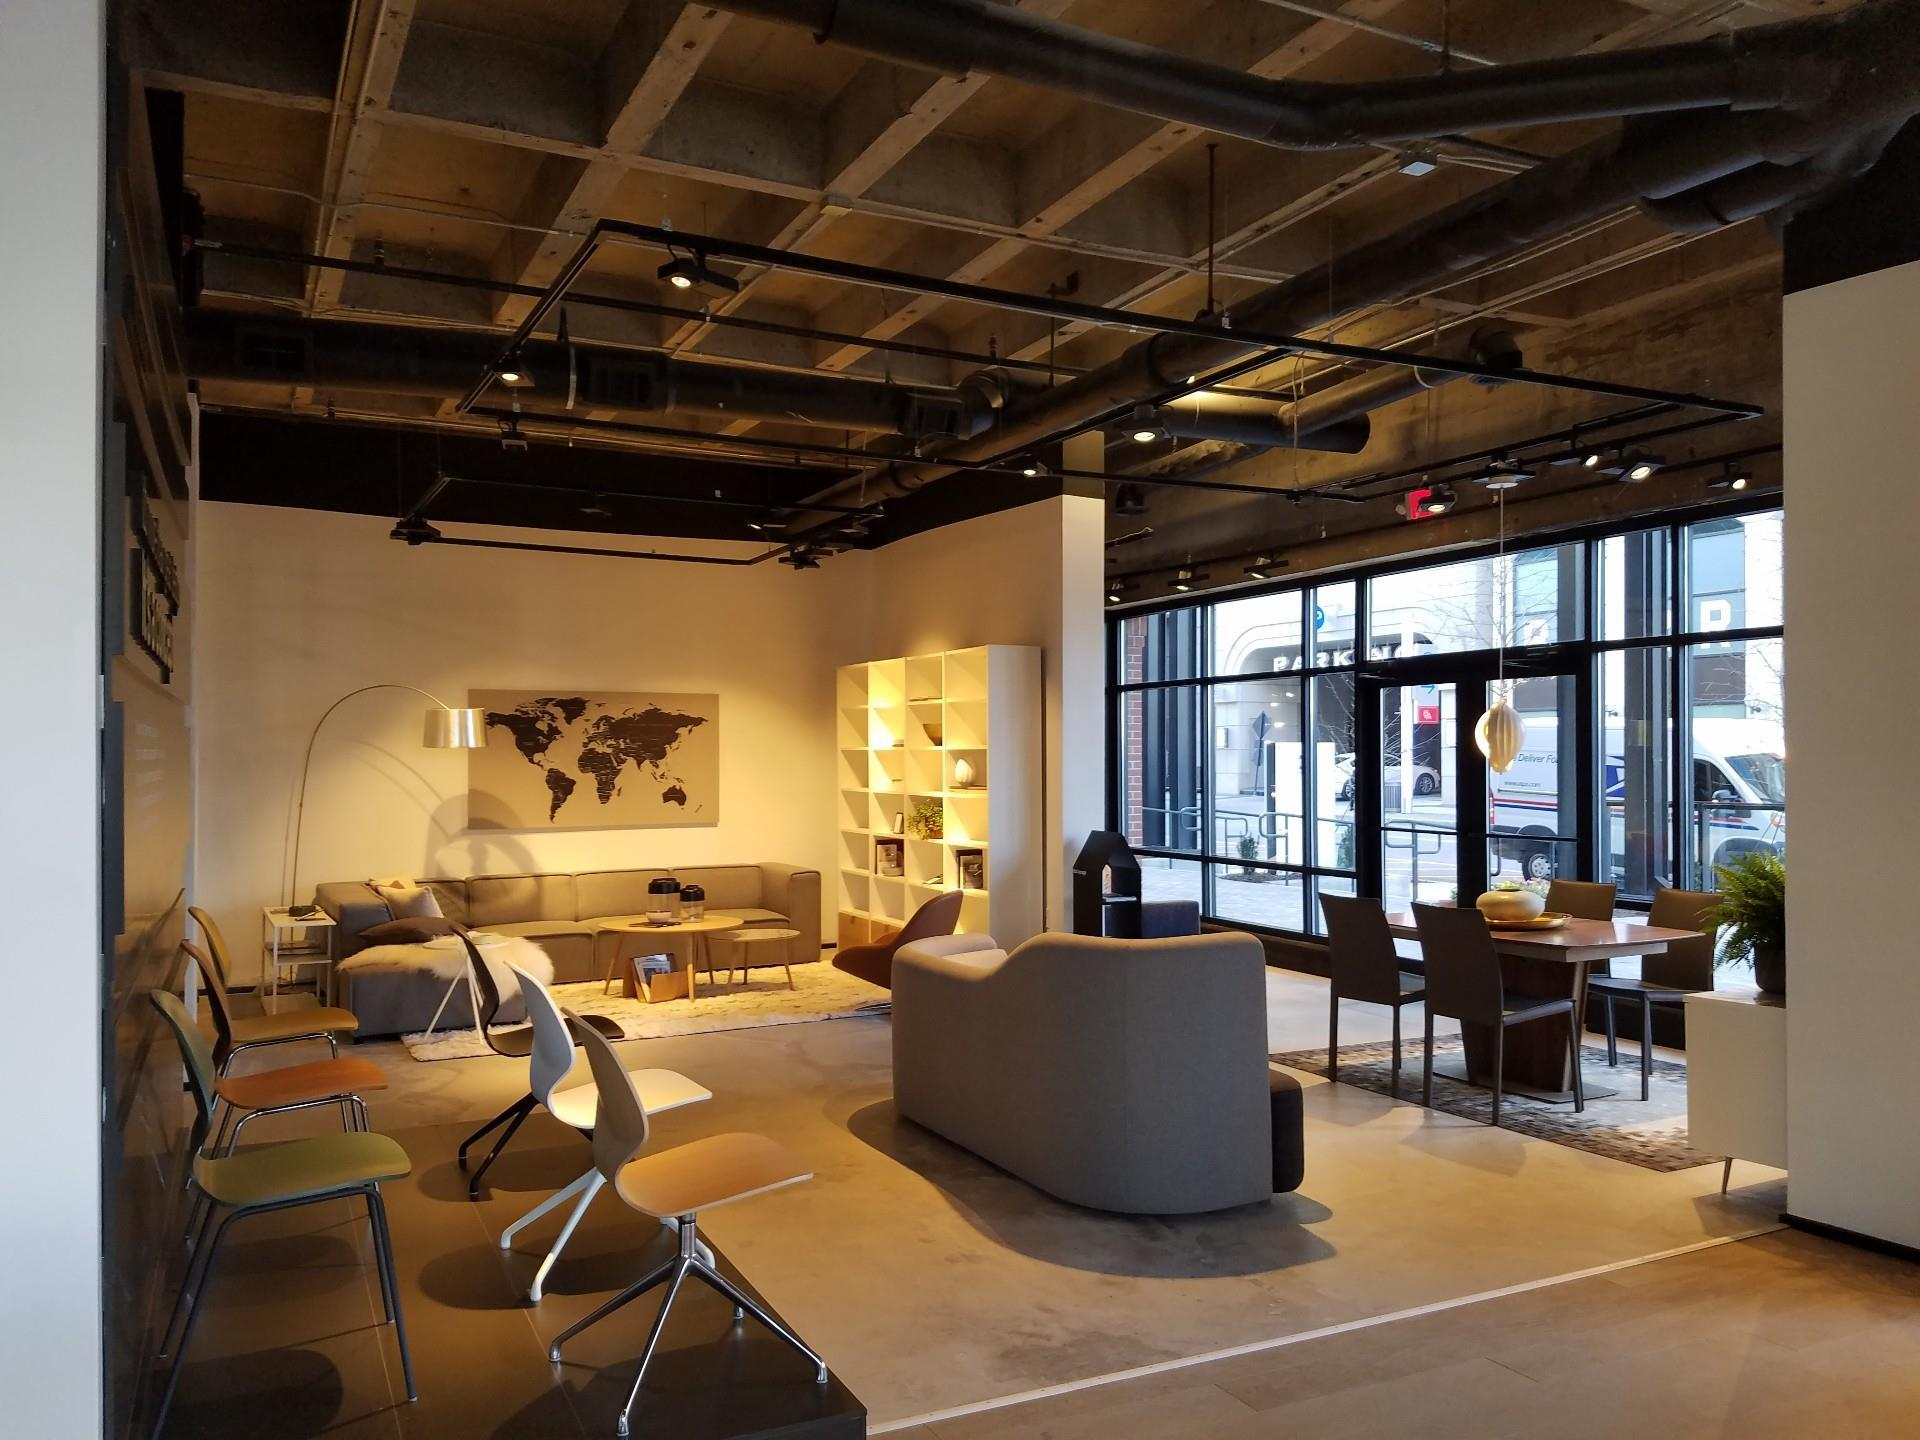 view of interior with exposed ceiling beams and wooden accents with modern map art on wall and modern furniture and decorations